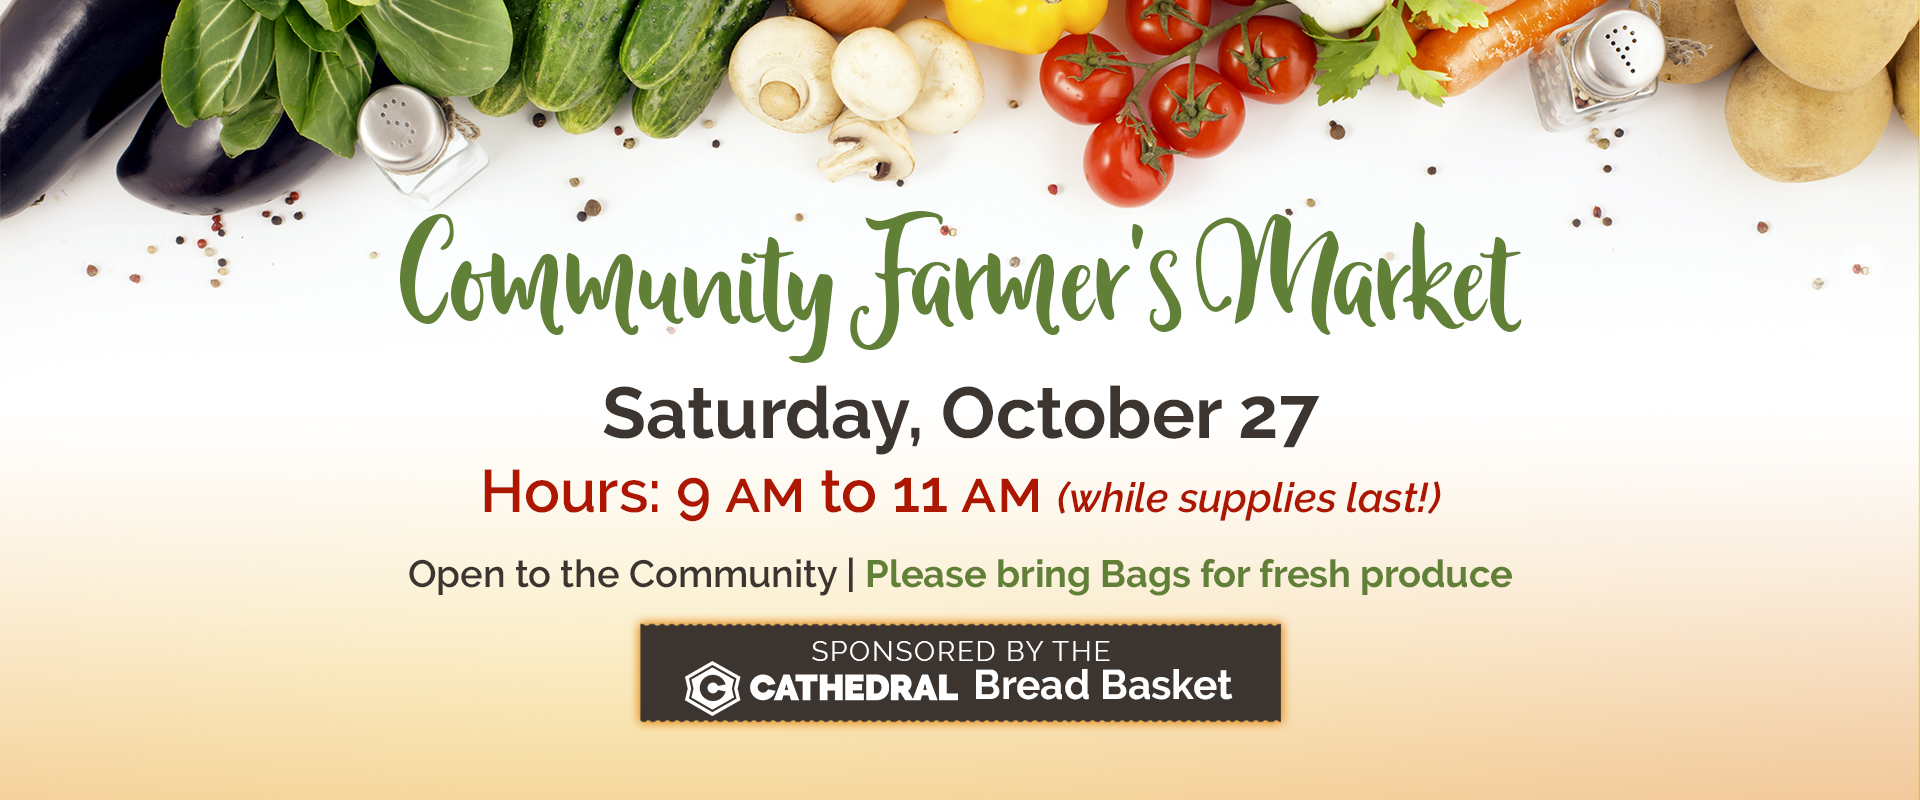 Community Farmer's Market - October 27, 2018